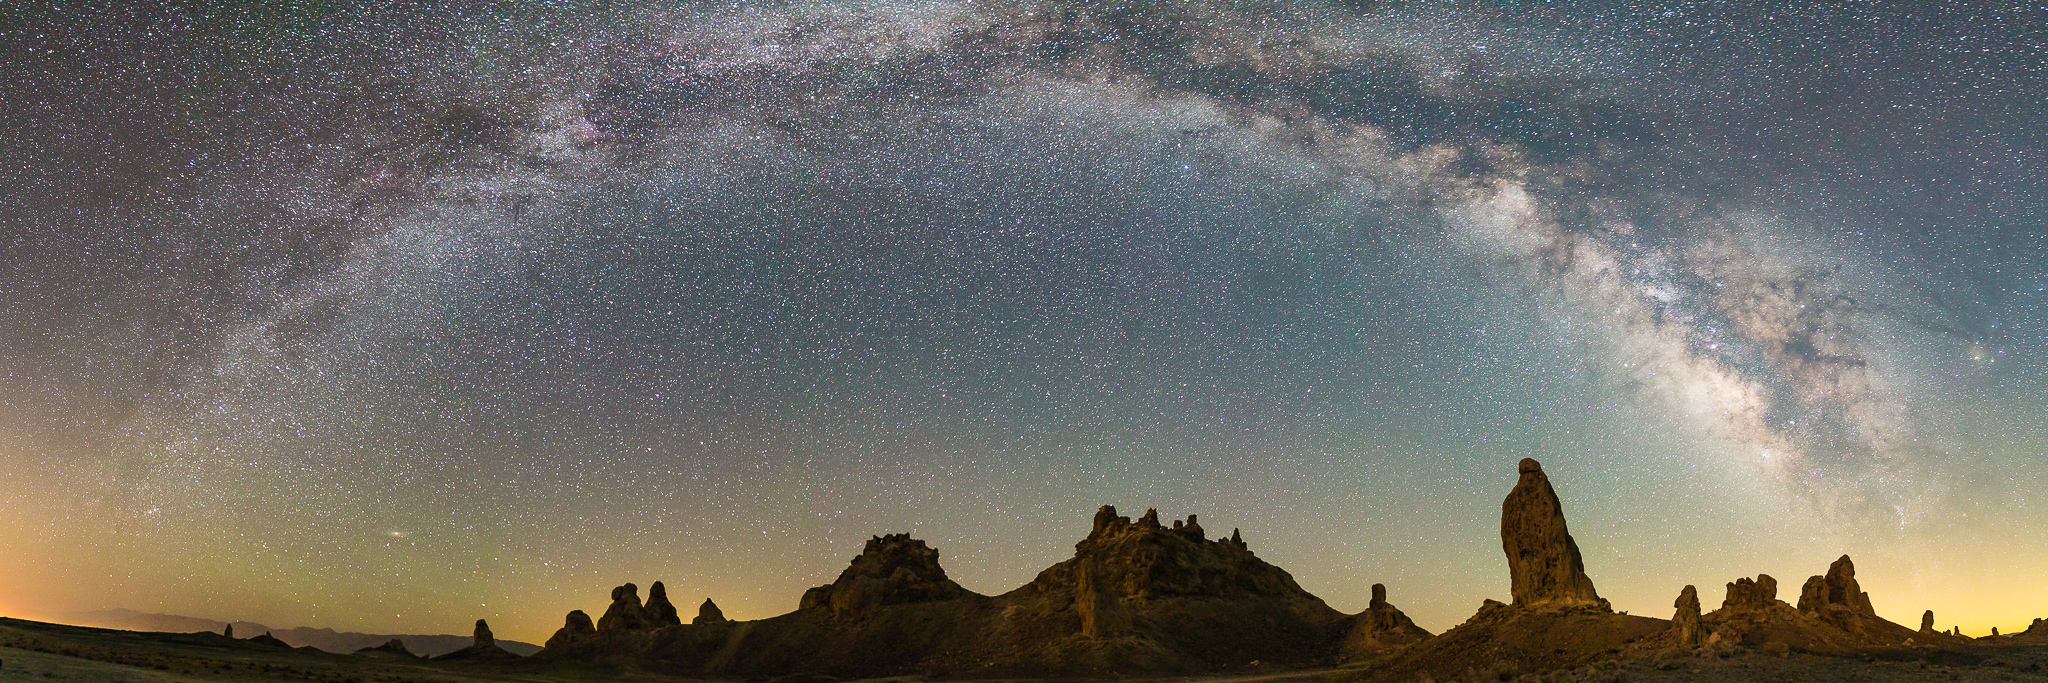 photographing milky way pano